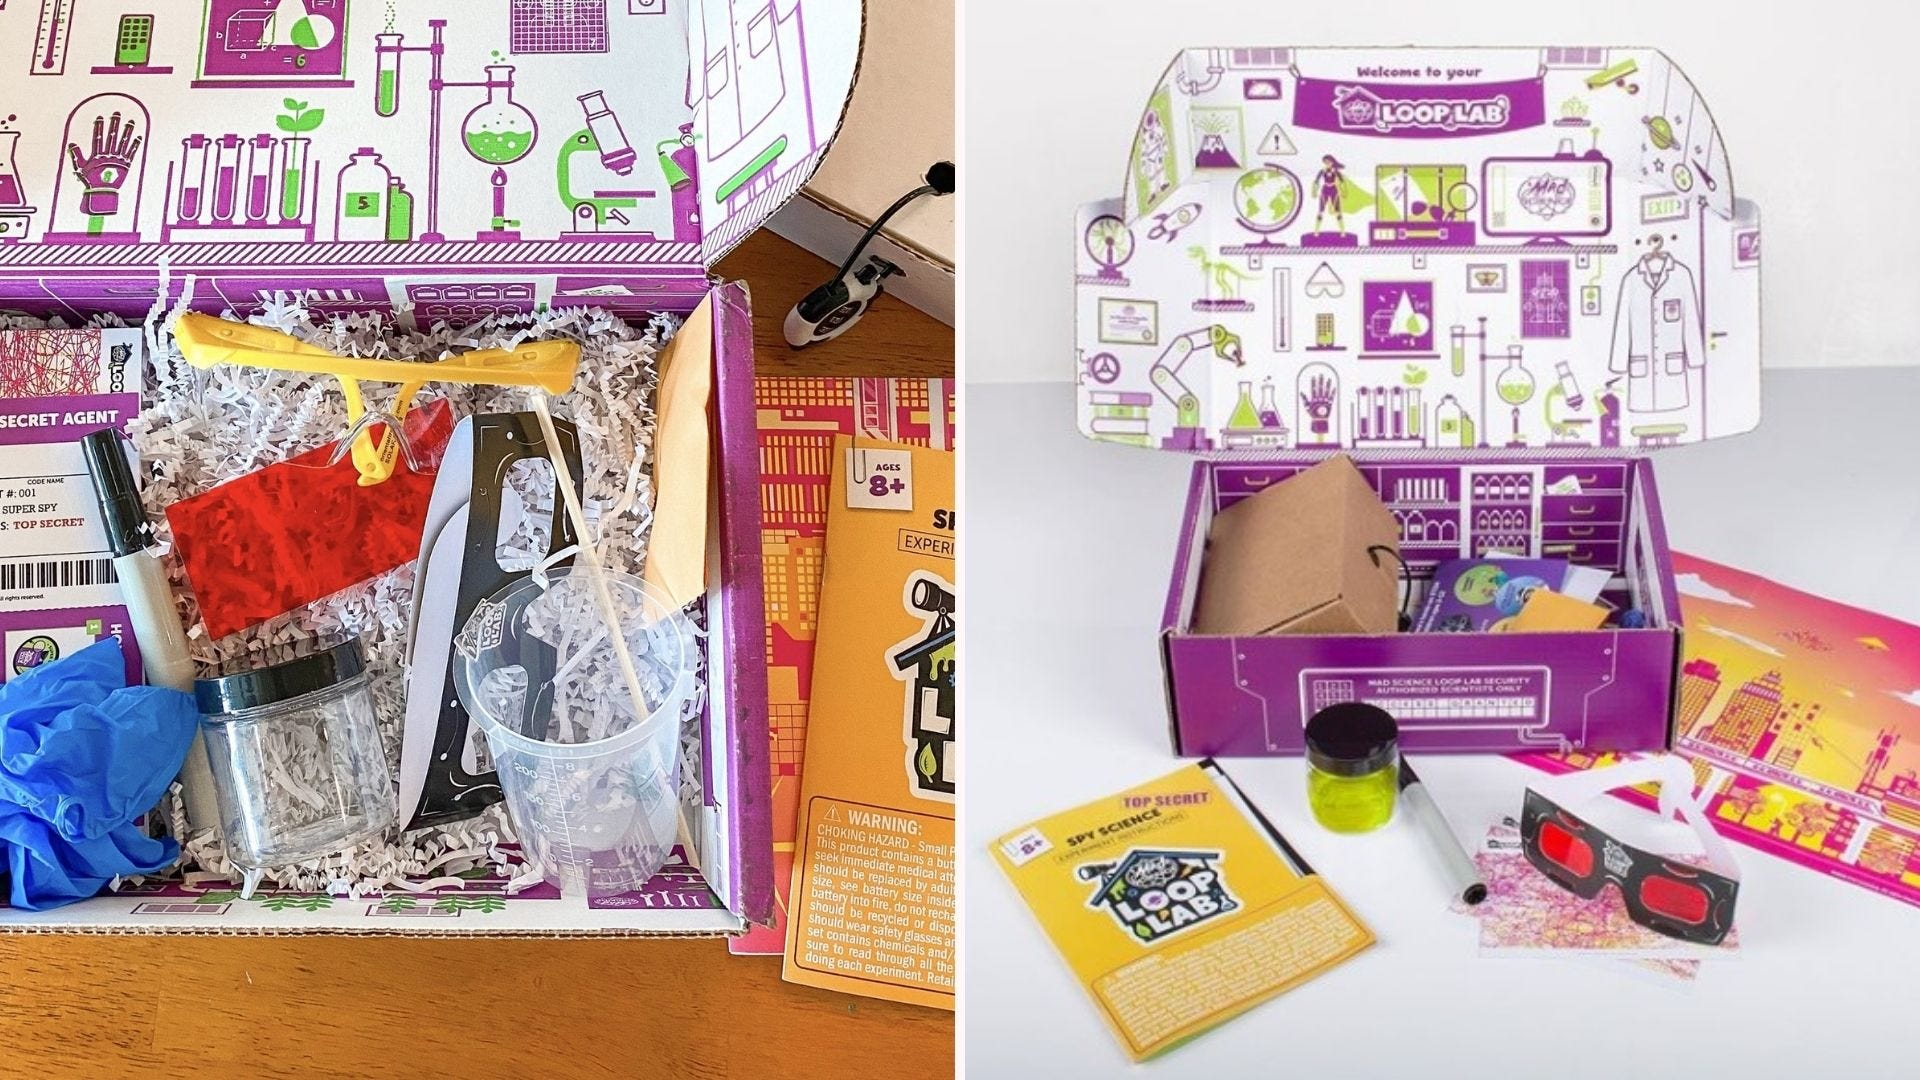 Two open purple boxes with various science supplies inside